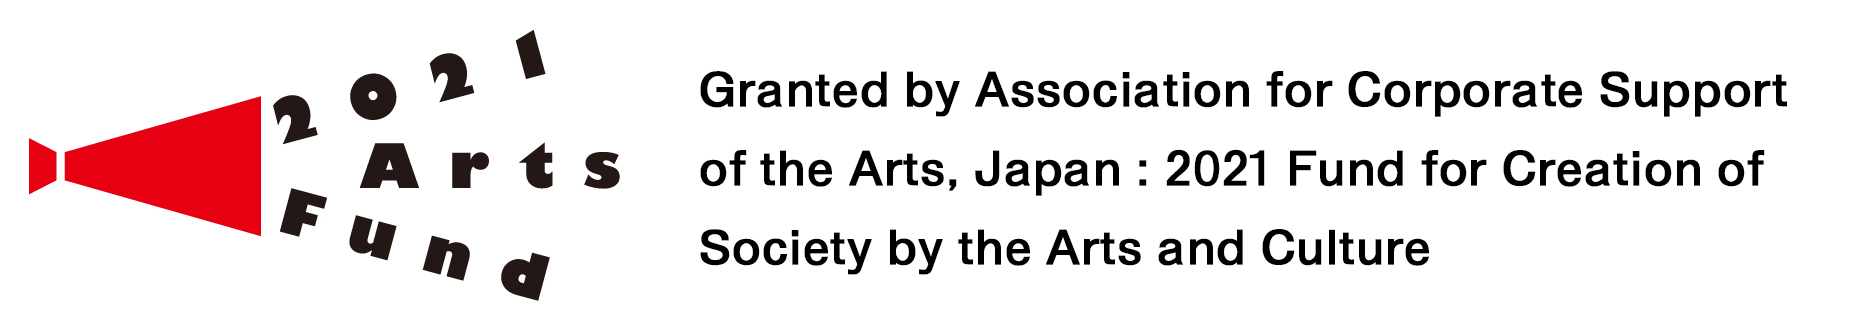 Granted by Association for Corporate Support of the Arts, Japan:2021 Fund for Creation of Society by the Arts and Culture